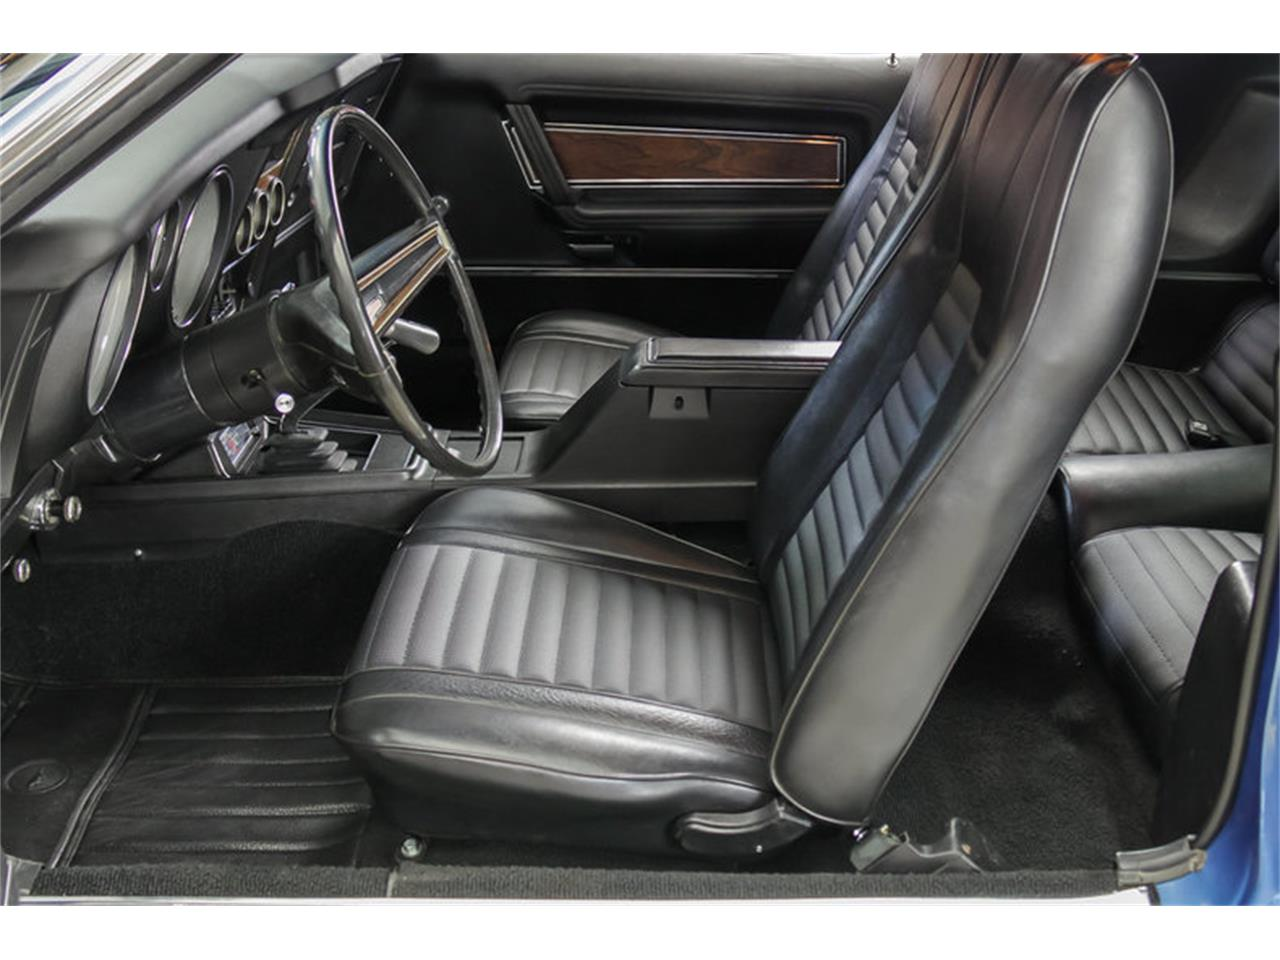 Large Picture of Classic 1973 Ford Mustang Mach 1 Q Code - $34,900.00 - JDX1